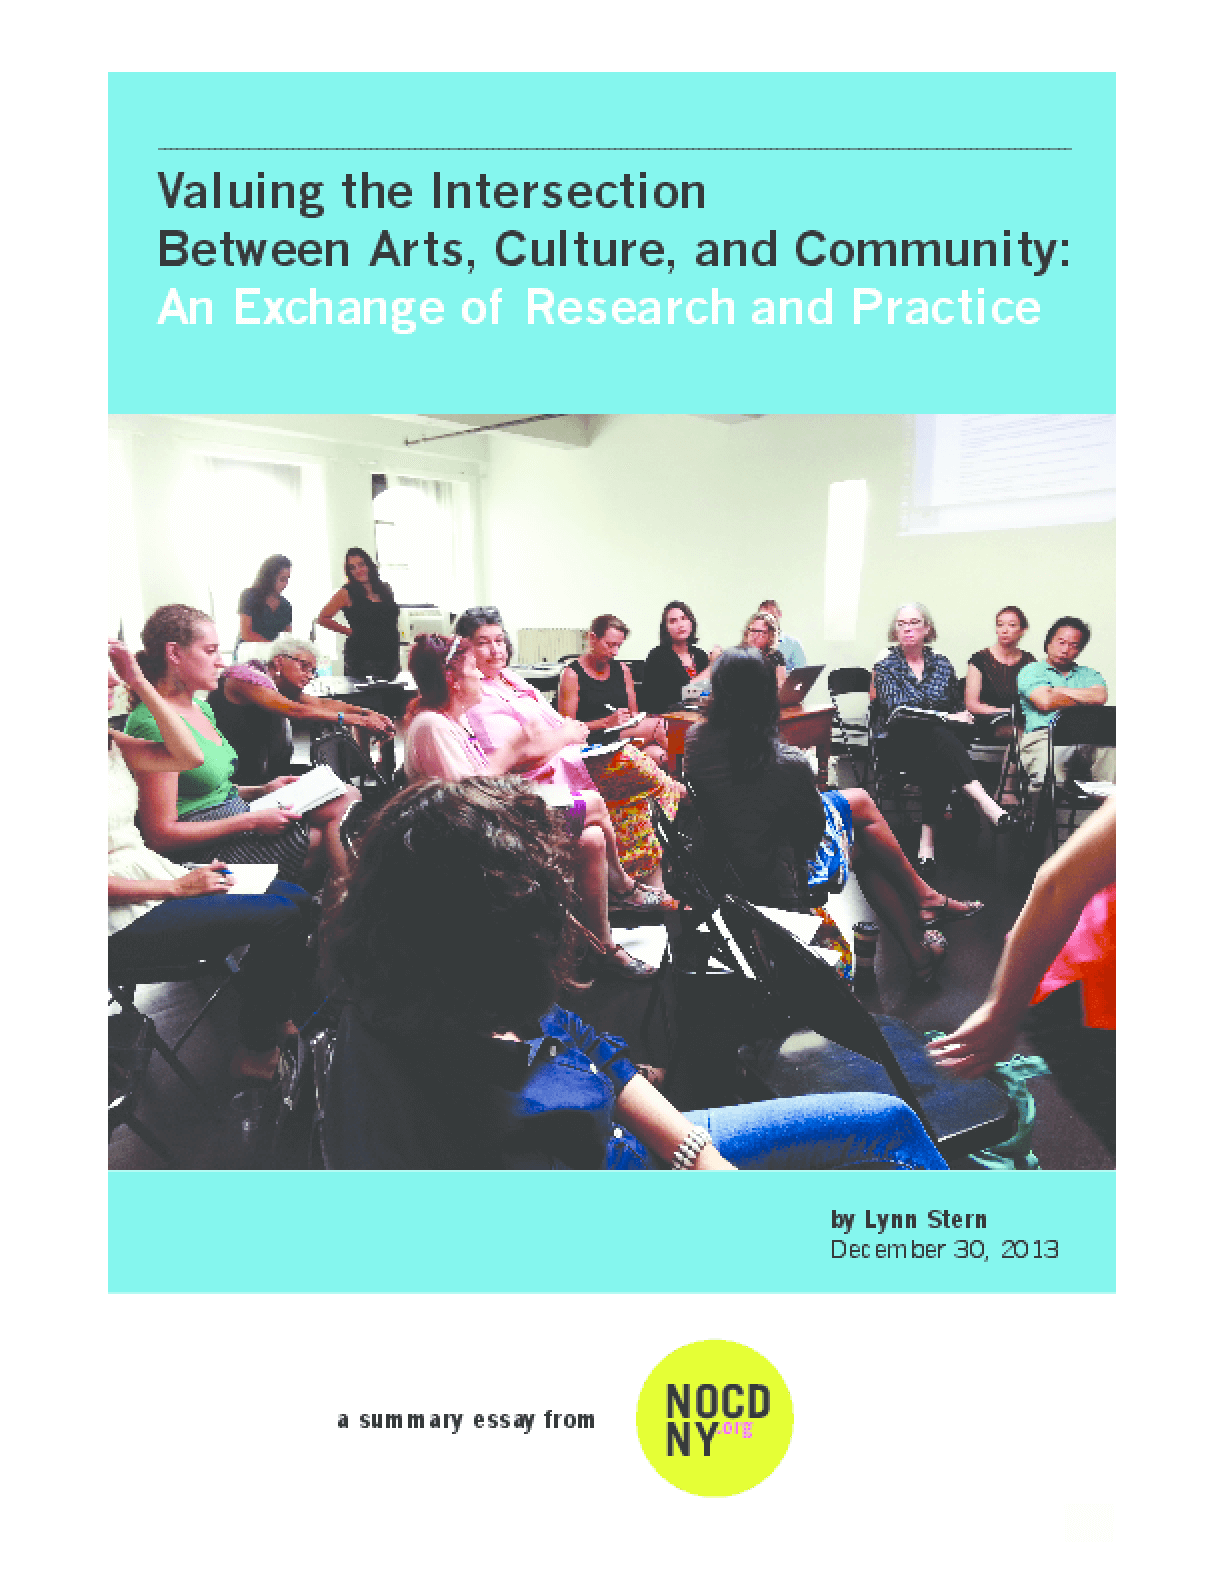 Valuing the Intersection Between Arts, Culture, and Community: An Exchange of Research and Practice